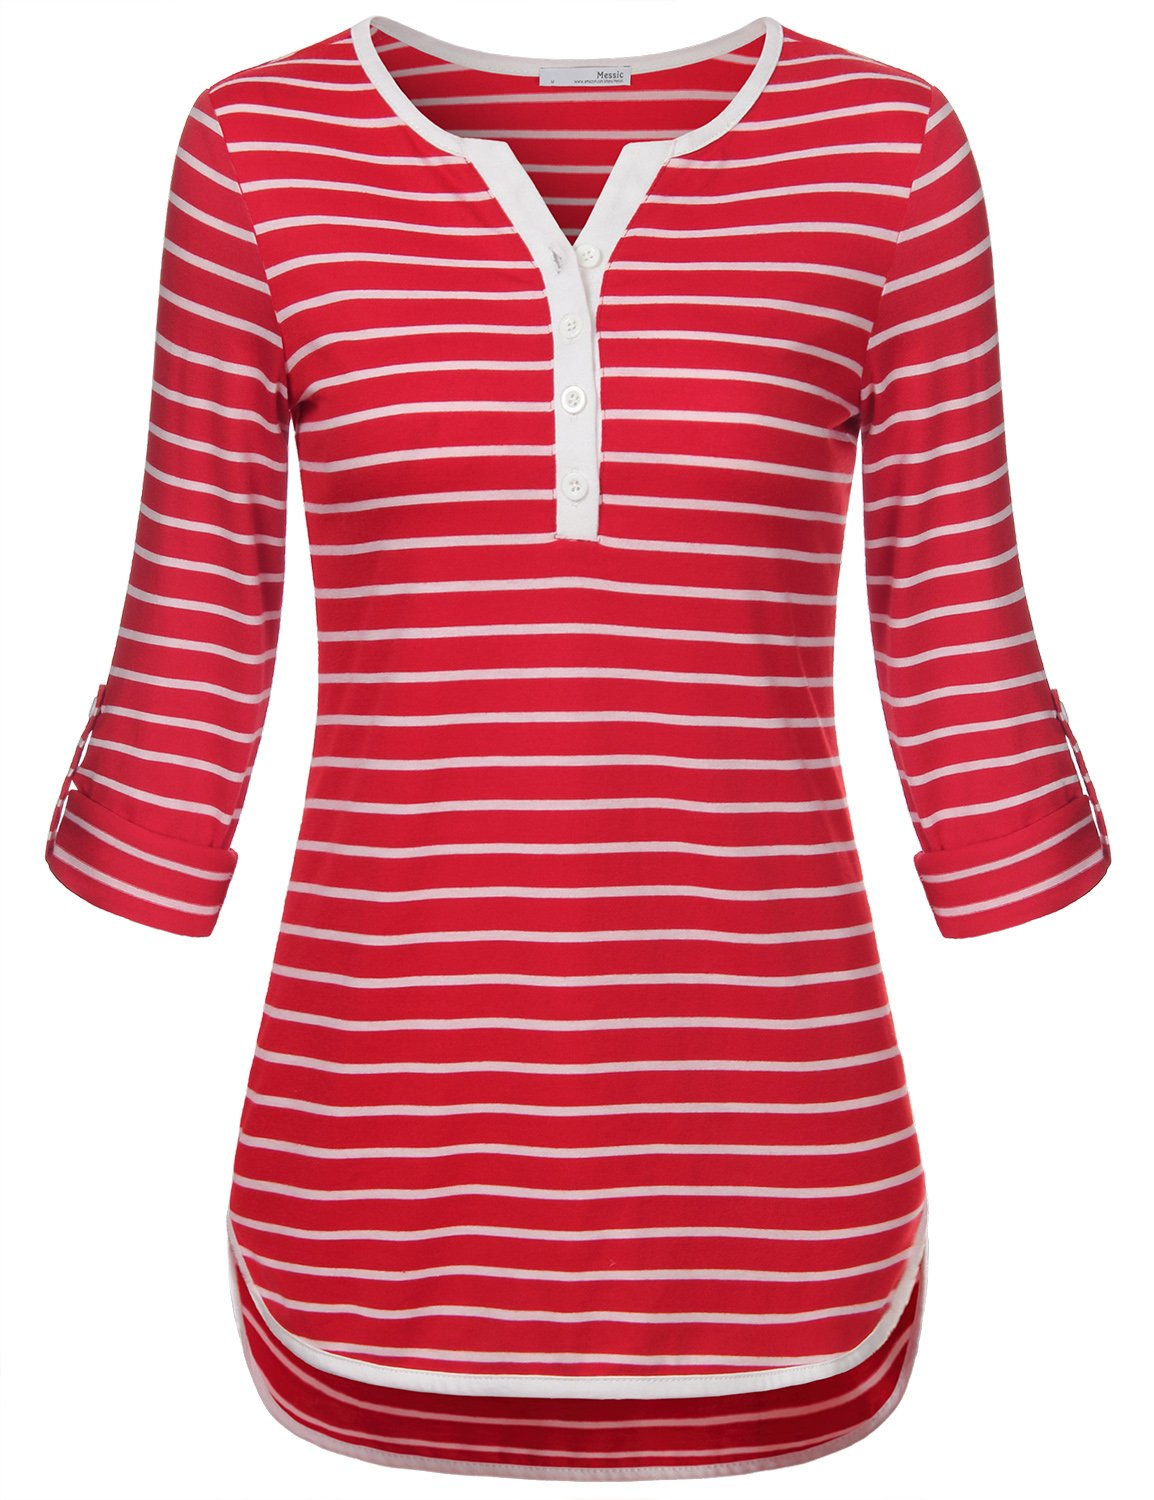 Messic 3/4 Sleeve Shirts for Women, Women's Mid-Long Style Roll up Sleeve V-Neck Casual Striped Quarter Button Shirt (Large,Red)